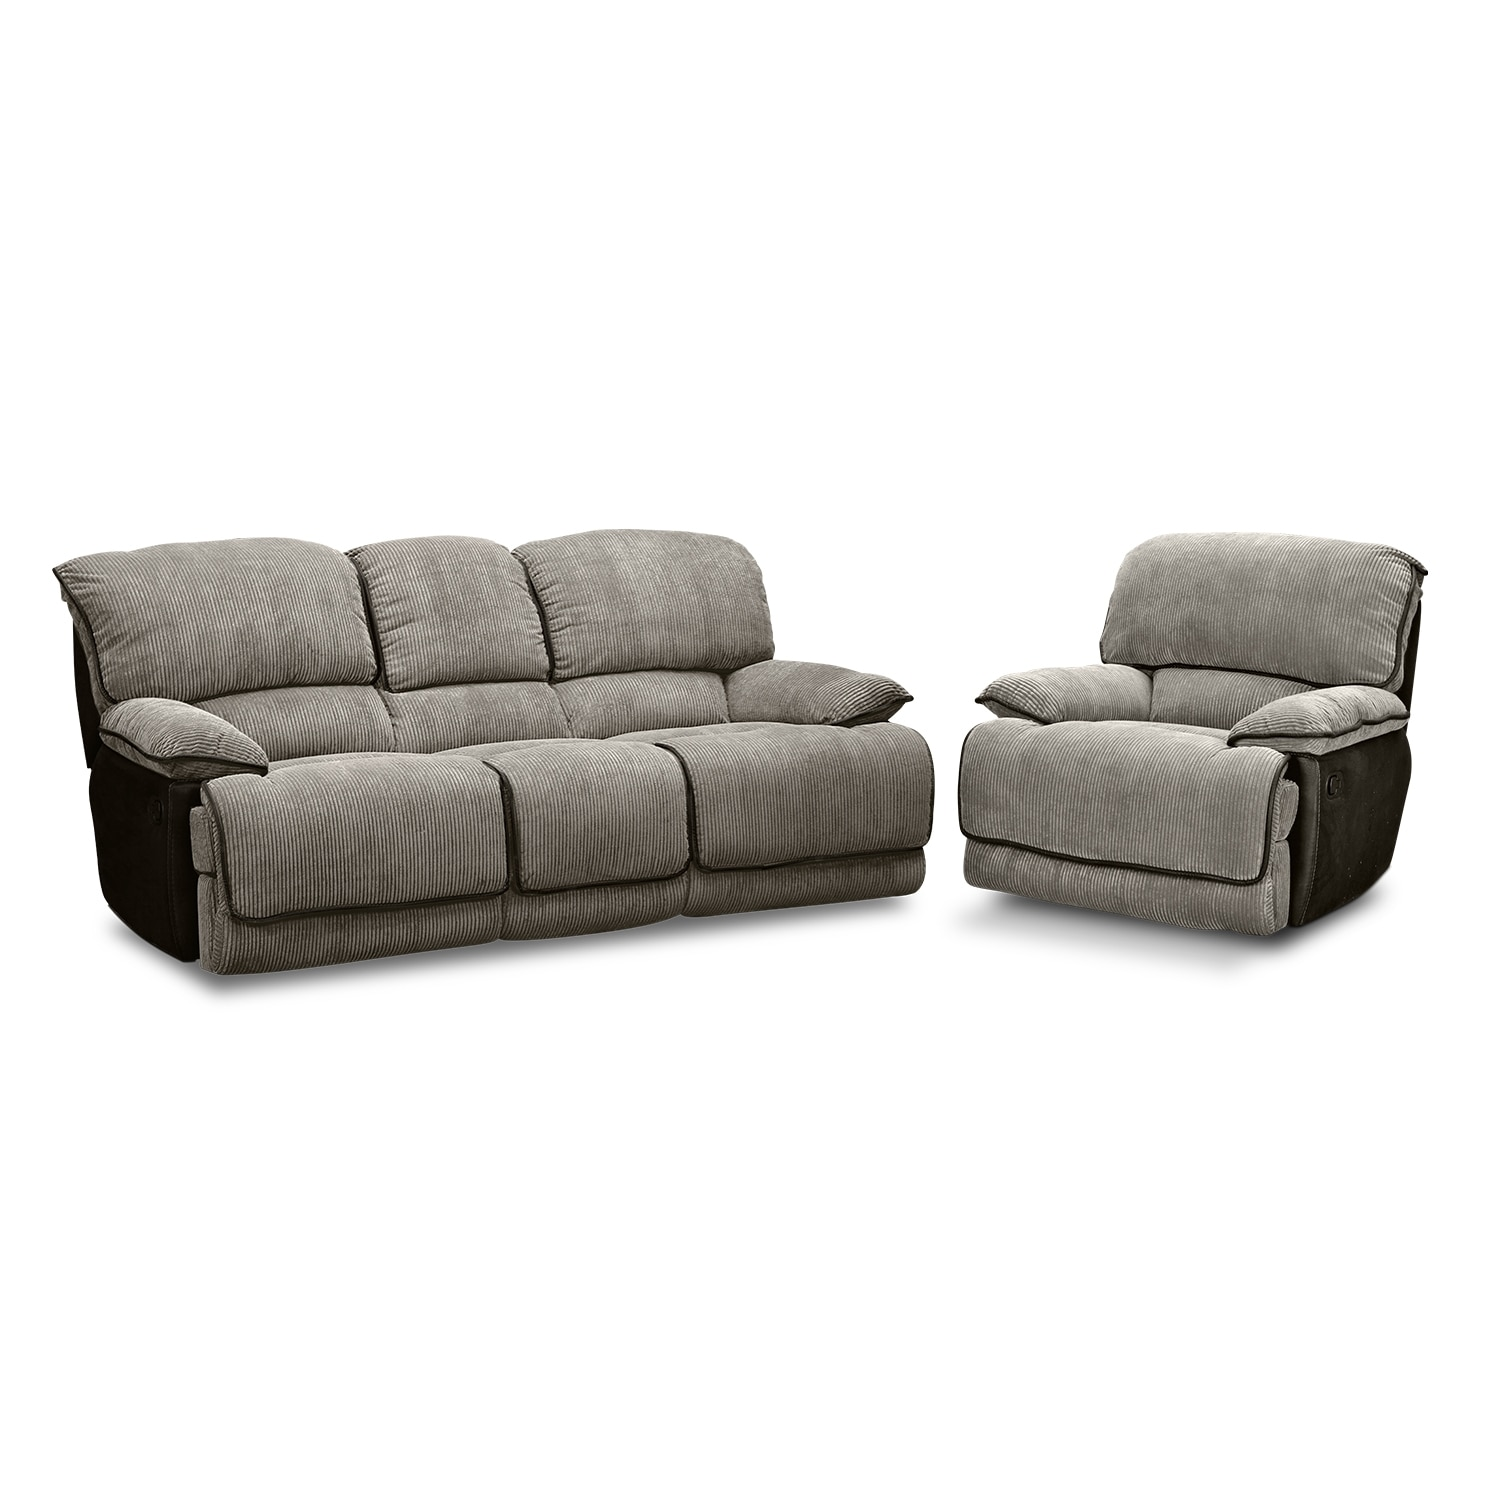 Laguna Dual Reclining Sofa Steel American Signature Furniture